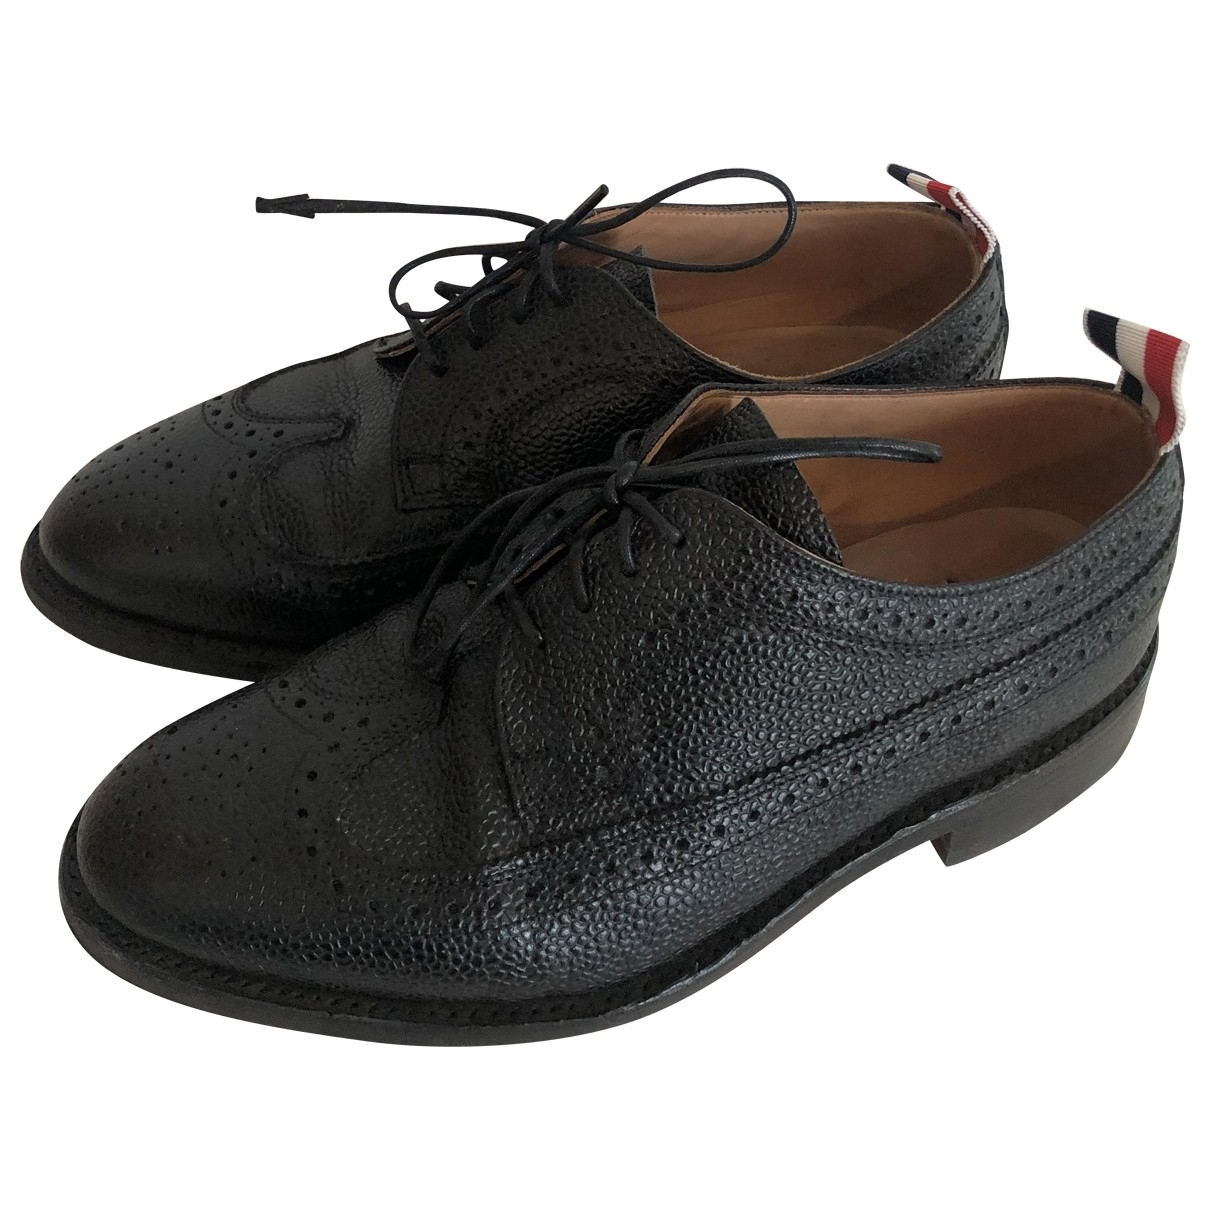 Thom Browne \N Black Leather Lace ups for Women 38 EU